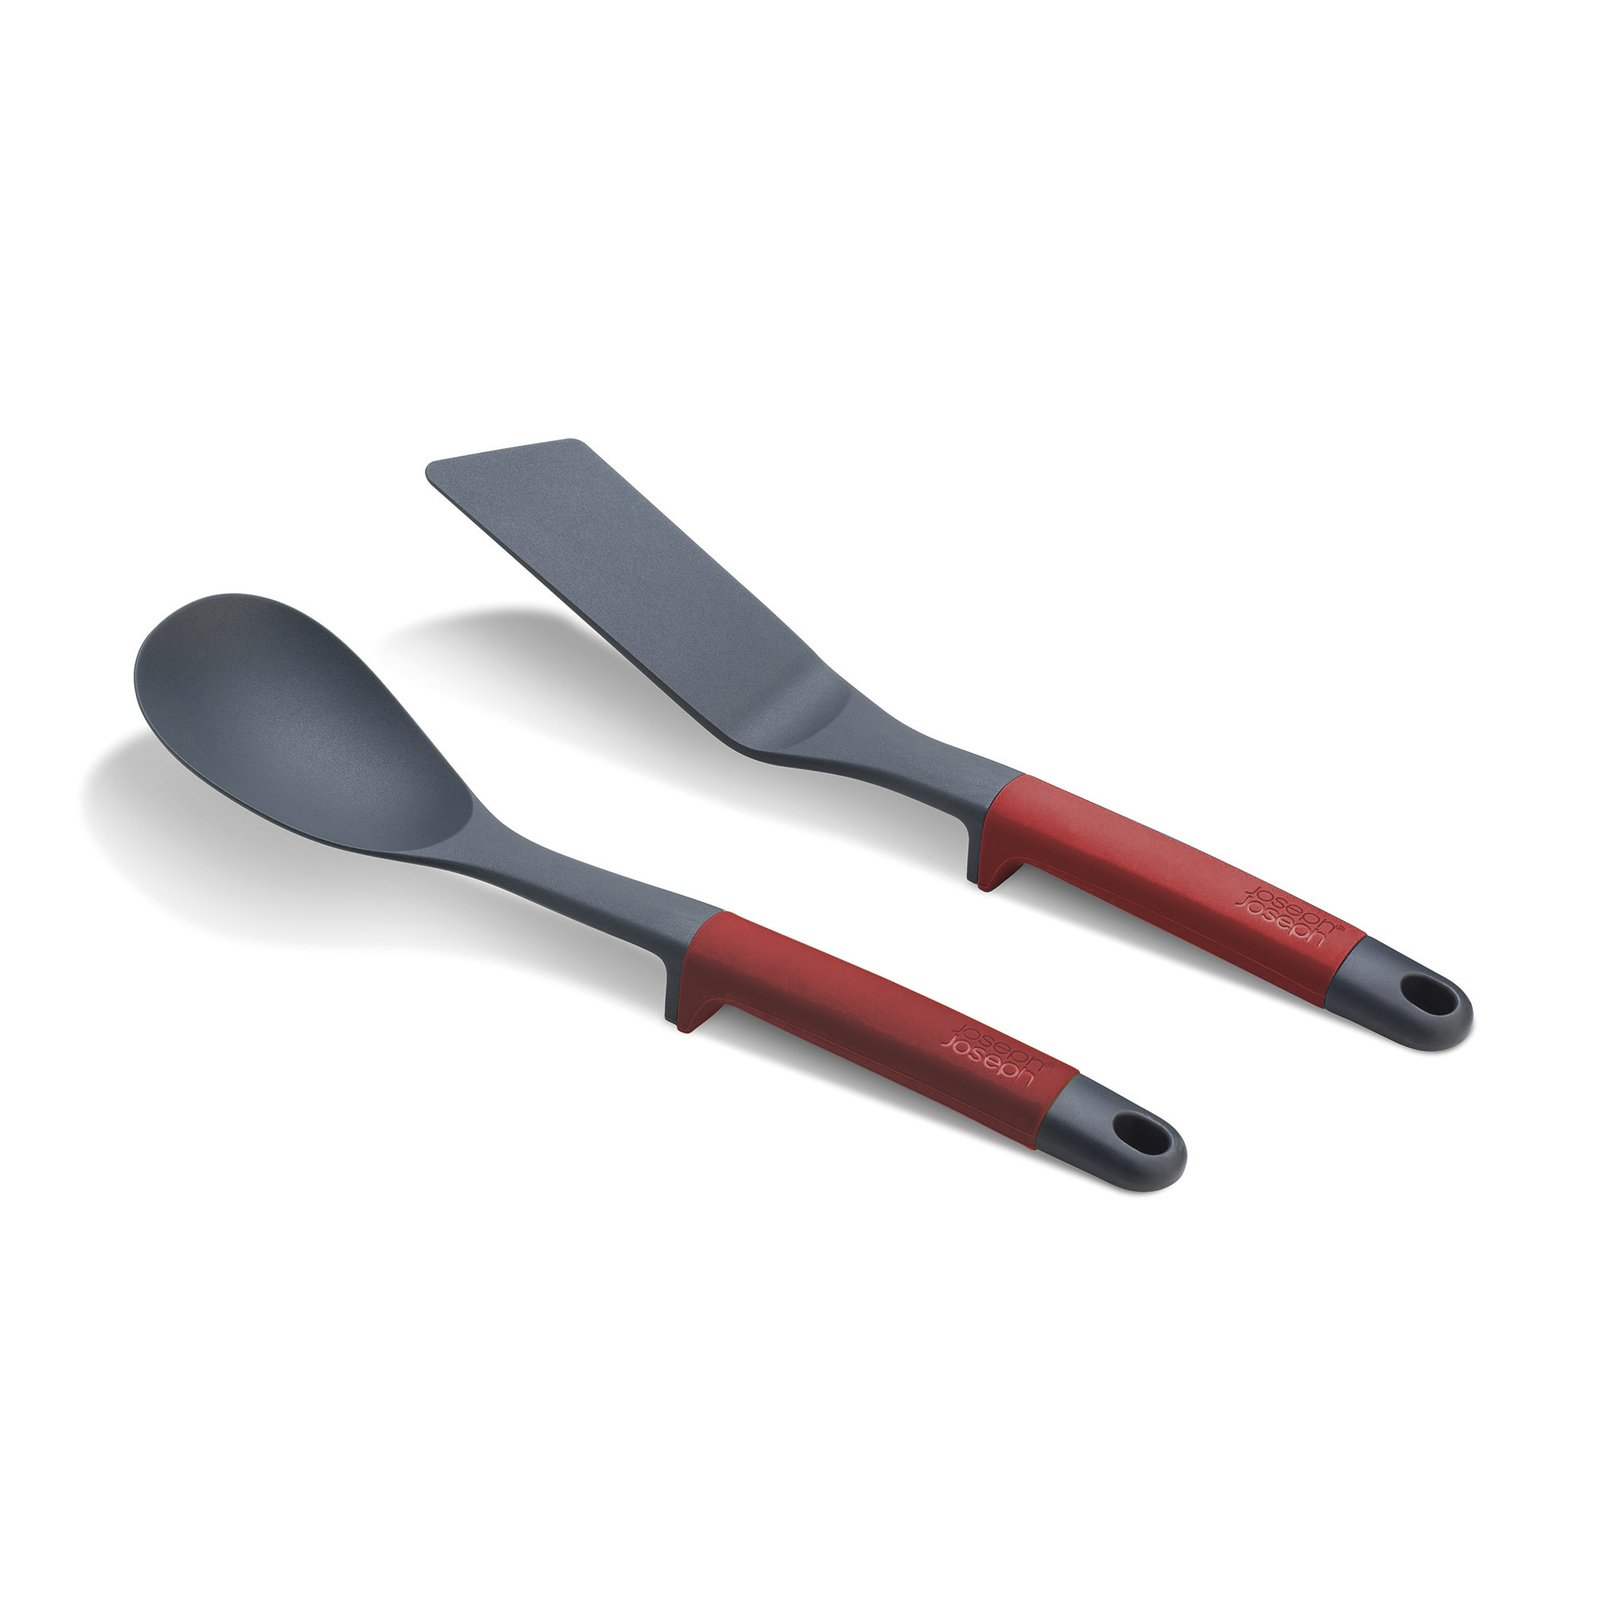 Joseph Joseph 10454 Elevate Solid Spoon and Flexible Turner with Integrated Tool Rest 2-piece Red